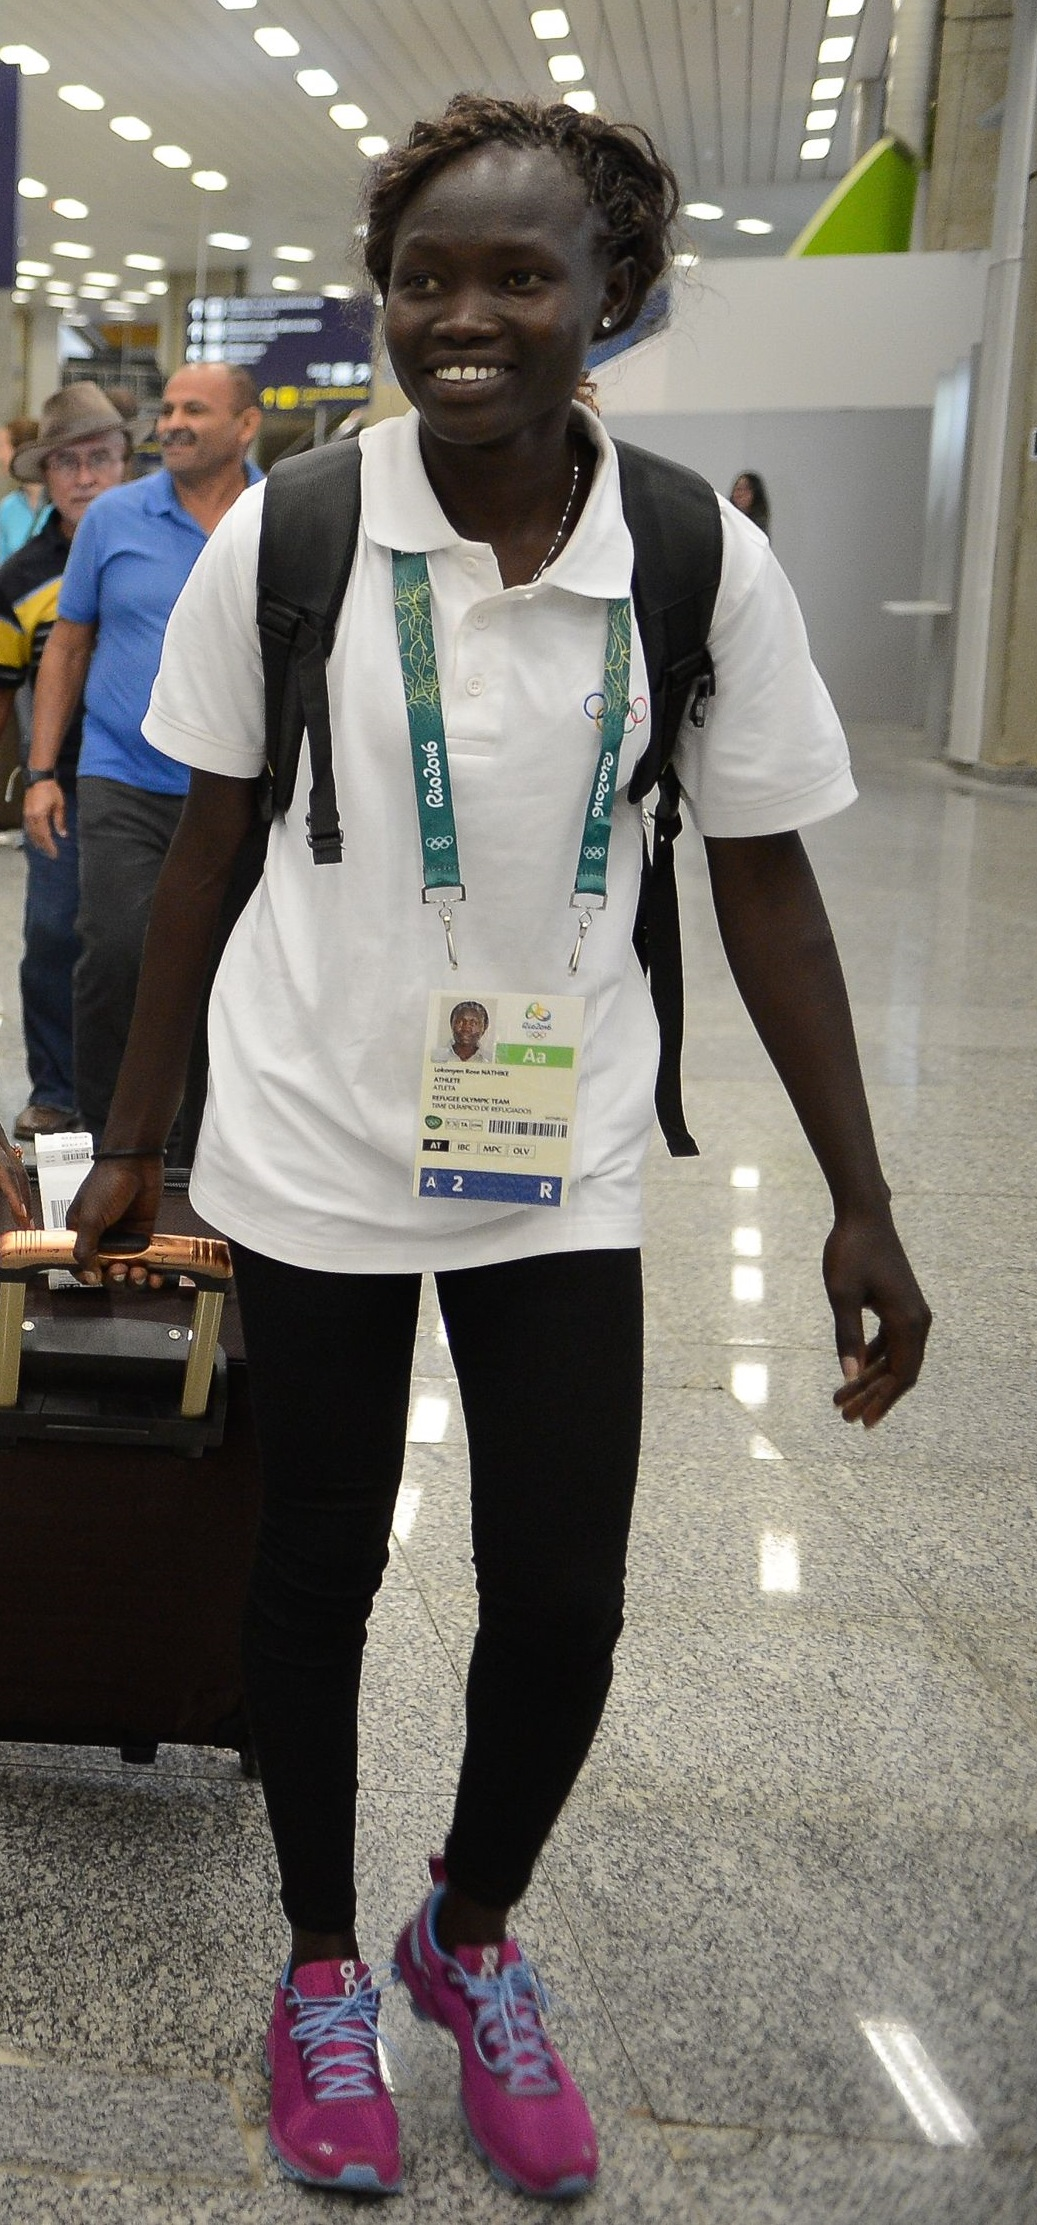 Rose Lokonyen arriving in Rio de Janeiro for the Olympic Games image: tomaz silva/agência brasil